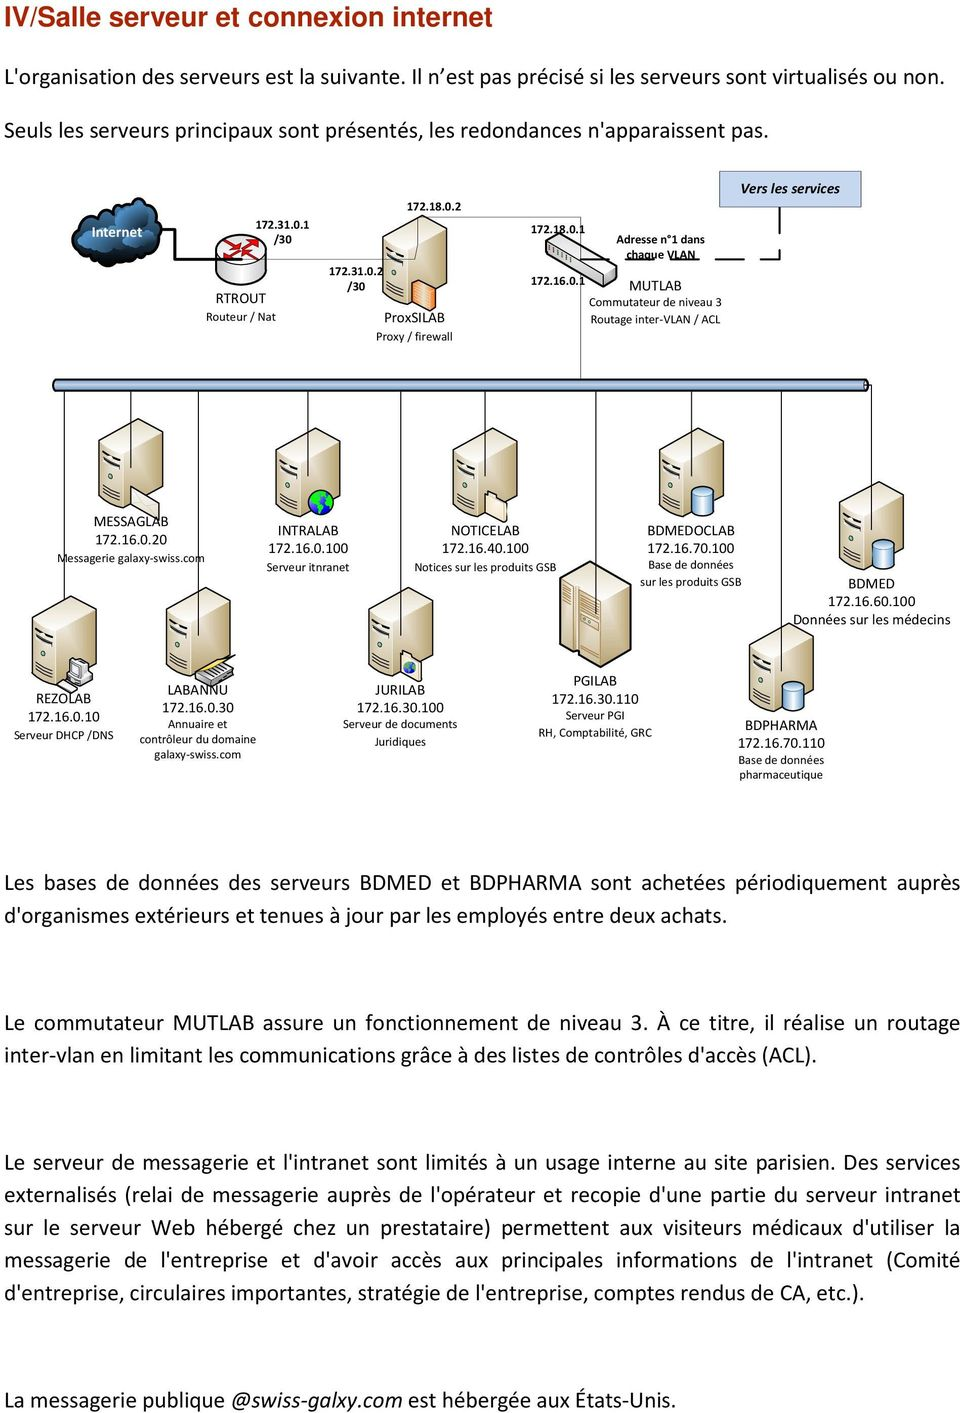 16.0.1 MUTLAB Commutateur de niveau 3 Routage inter-vlan / ACL Vers les services MESSAGLAB 172.16.0.20 Messagerie galaxy-swiss.com INTRALAB 172.16.0.100 Serveur itnranet NOTICELAB 172.16.40.